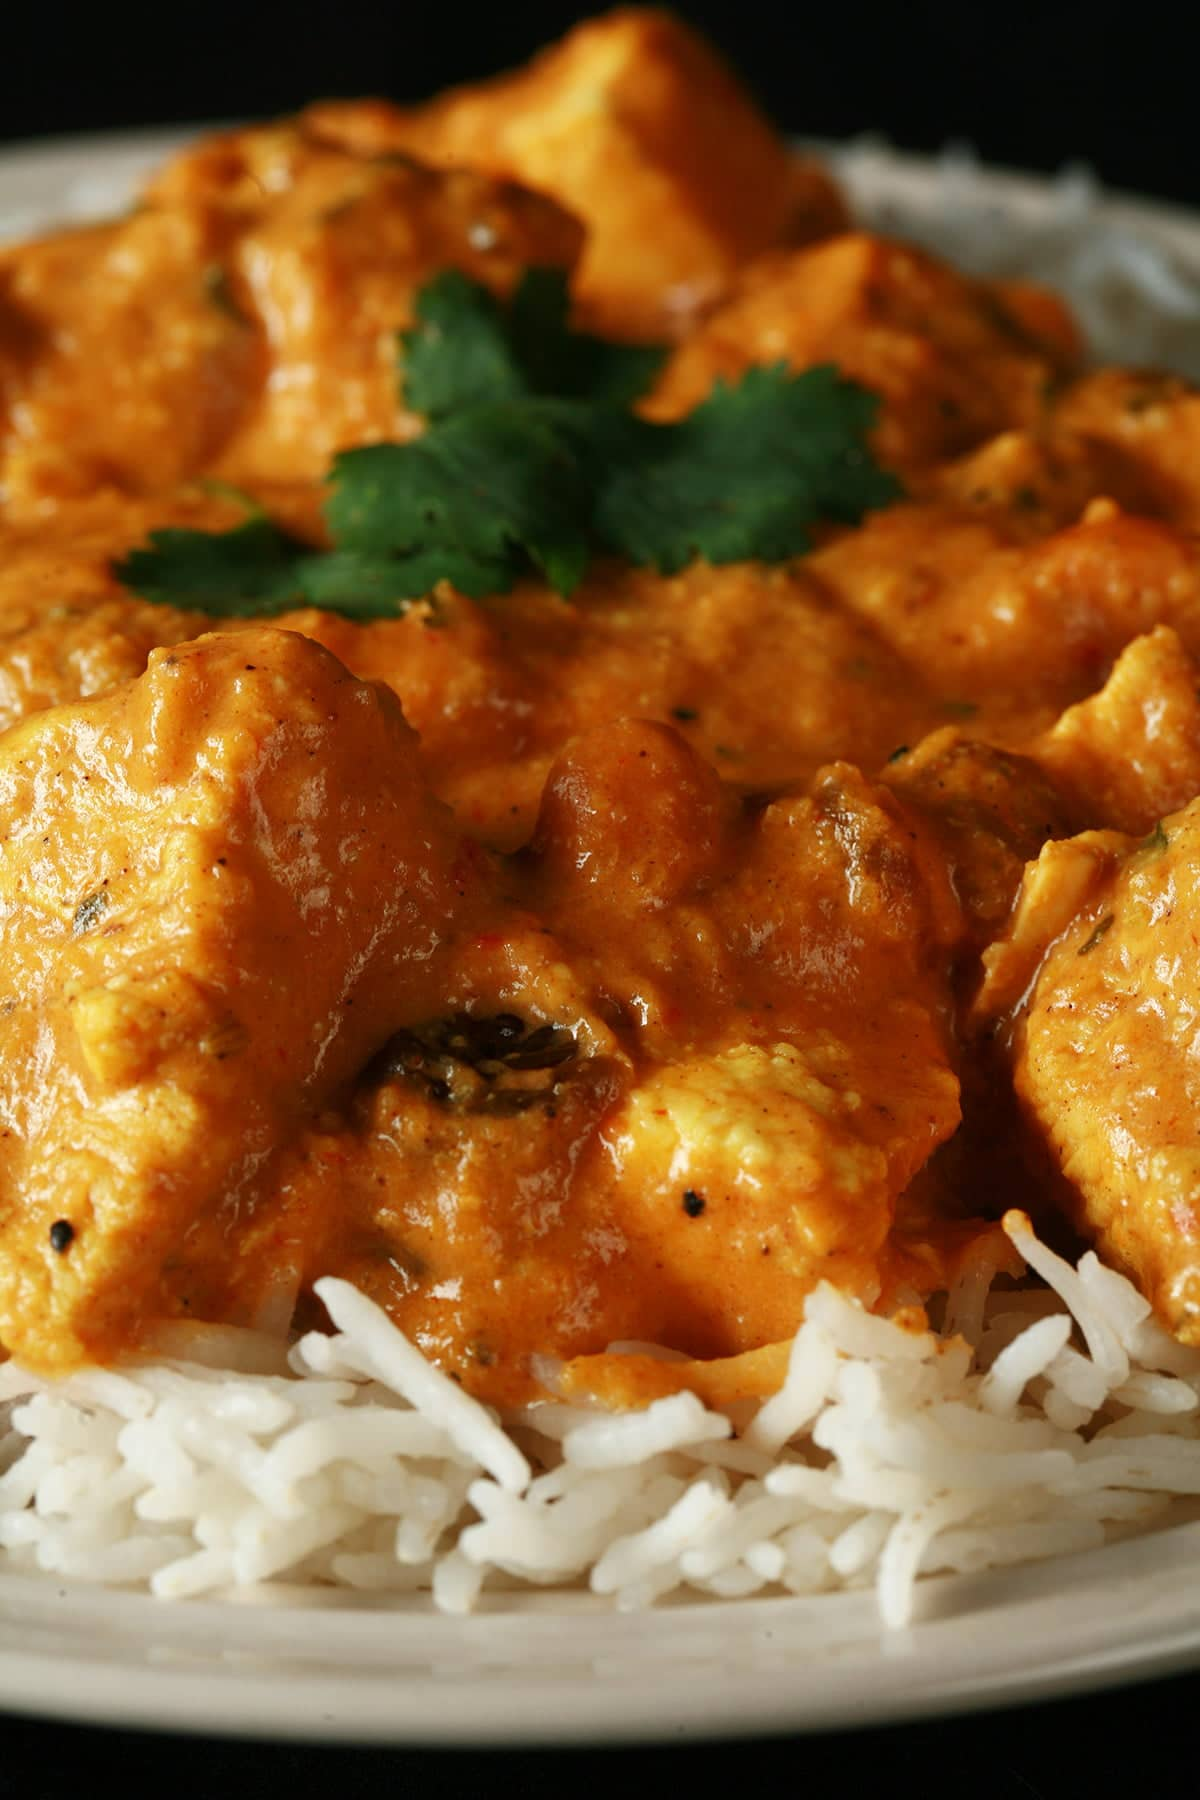 A plate with rice smothered in a creamy Chicken Curry.